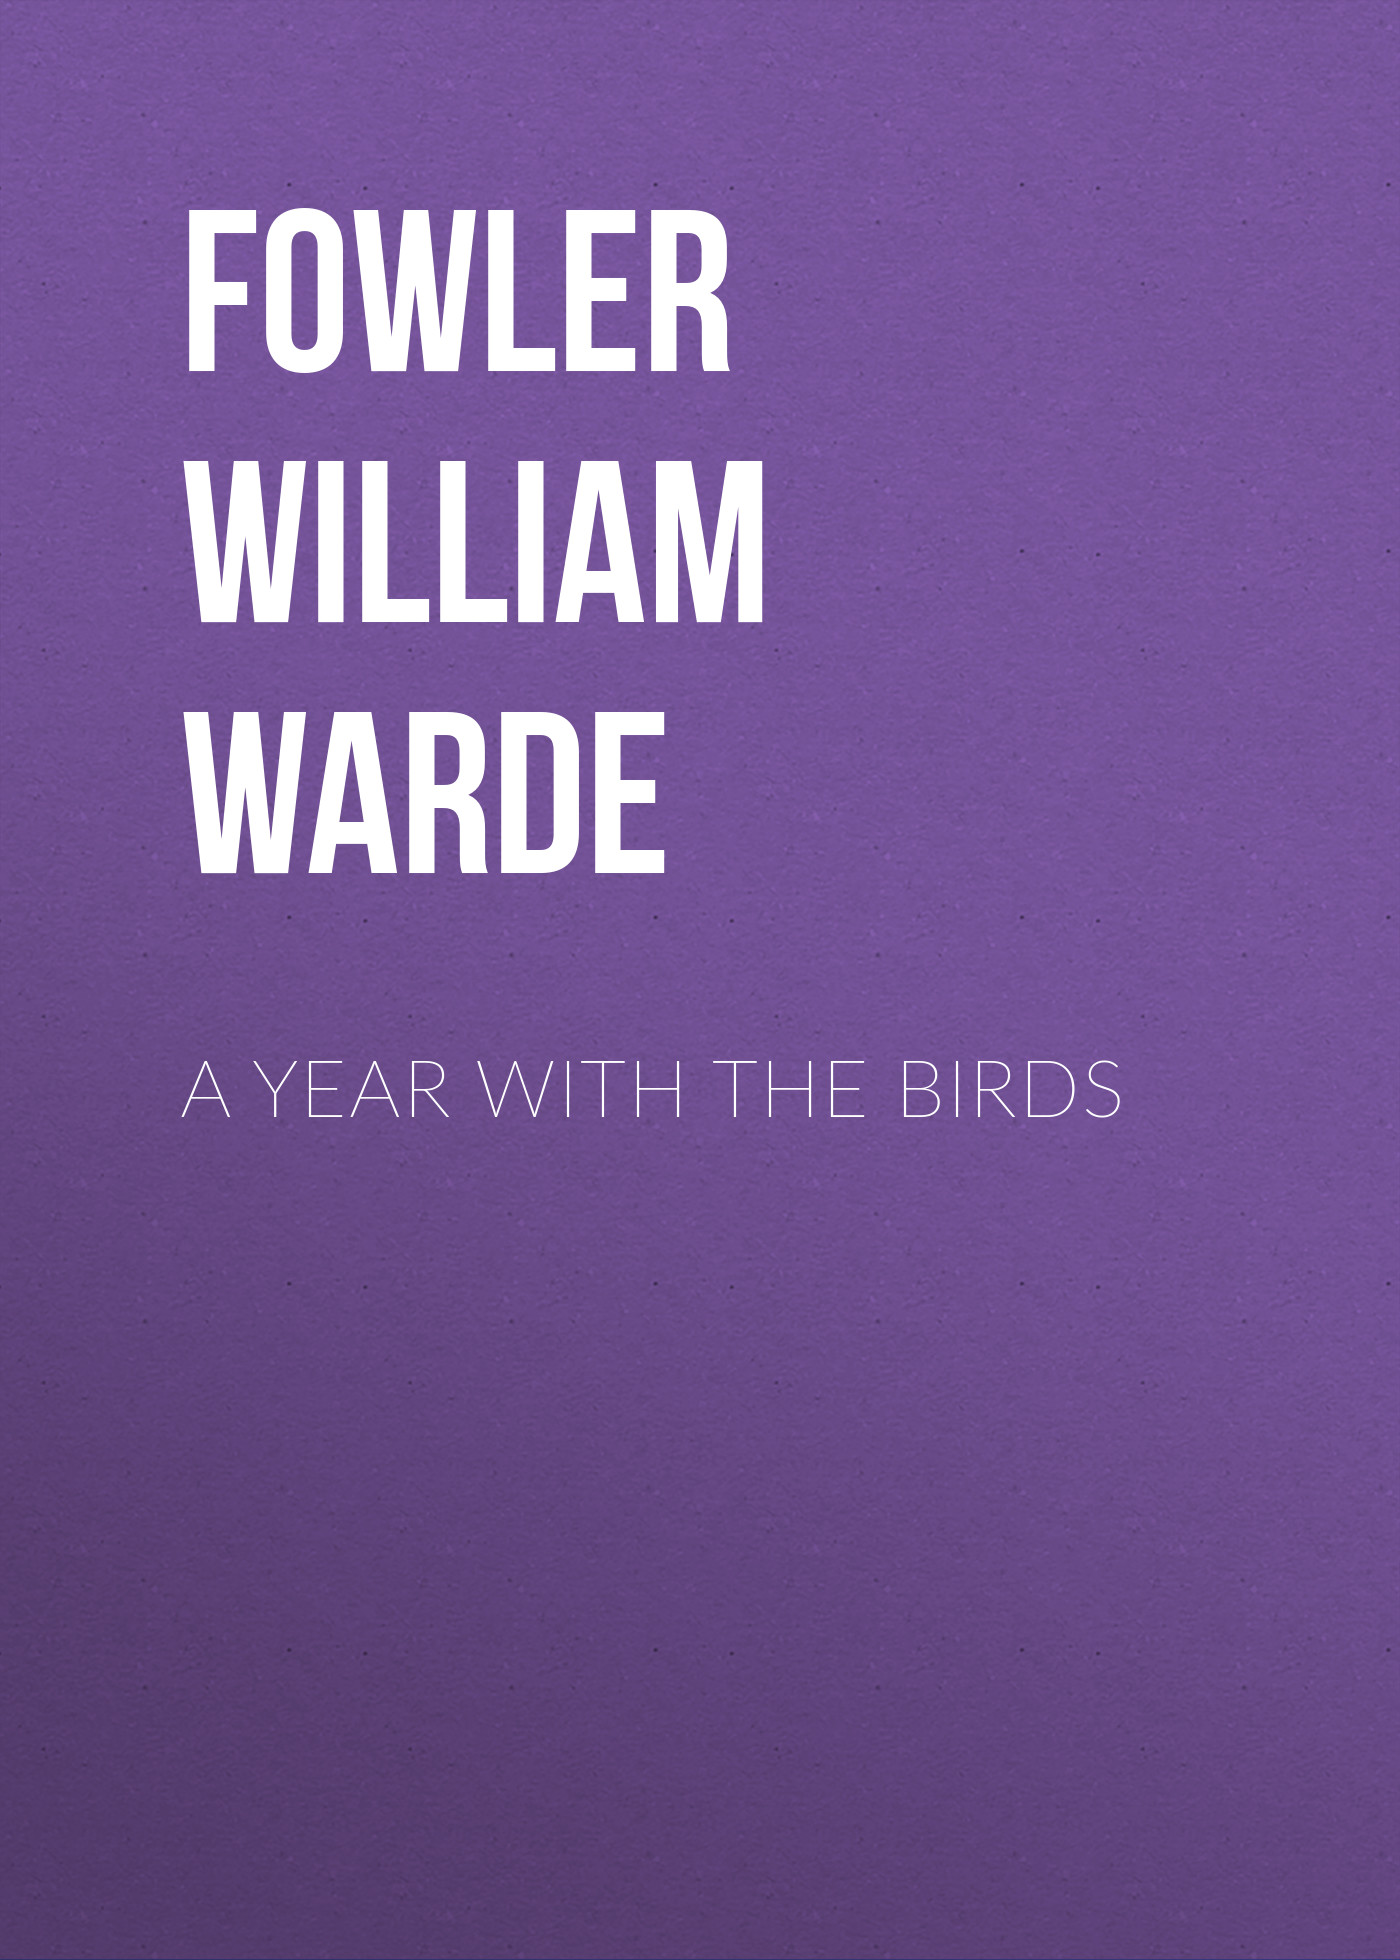 Фото - Fowler William Warde A Year with the Birds lld william chauncey fowler local law in massachusetts and connecticut historically considered